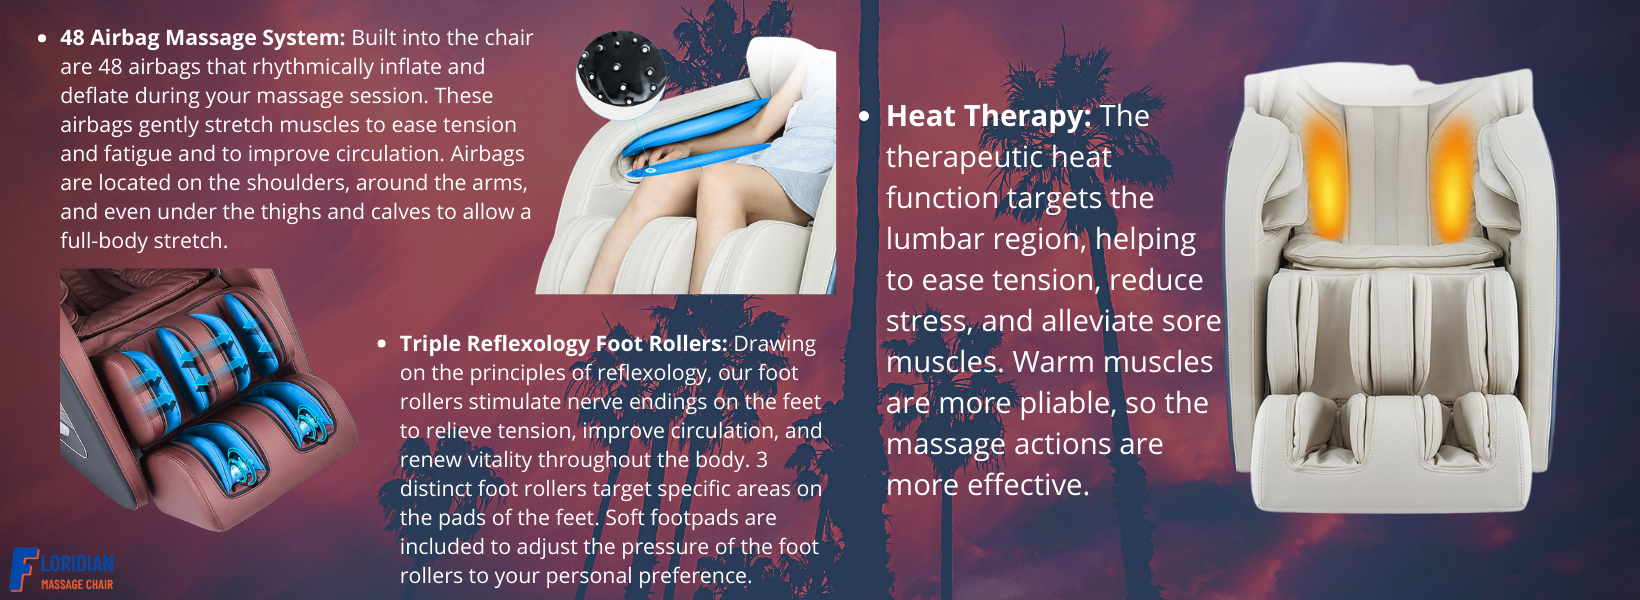 Heat Therapy: The therapeutic heat function targets the lumbar region, helping to ease tension, reduce stress, and alleviate sore muscles. Warm muscles are more pliable, so the massage actions are more effective. Triple Reflexology Foot Rollers: Drawing on the principles of reflexology, our foot rollers stimulate nerve endings on the feet to relieve tension, improve circulation, and renew vitality throughout the body. 3 distinct foot rollers target specific areas on the pads of the feet. Soft footpads are included to adjust the pressure of the foot rollers to your personal preference.  48 Airbag Massage System: Built into the chair are 48 airbags that rhythmically inflate and deflate during your massage session. These airbags gently stretch muscles to ease tension and fatigue and to improve circulation. Airbags are located on the shoulders, around the arms, and even under the thighs and calves to allow a full-body stretch.